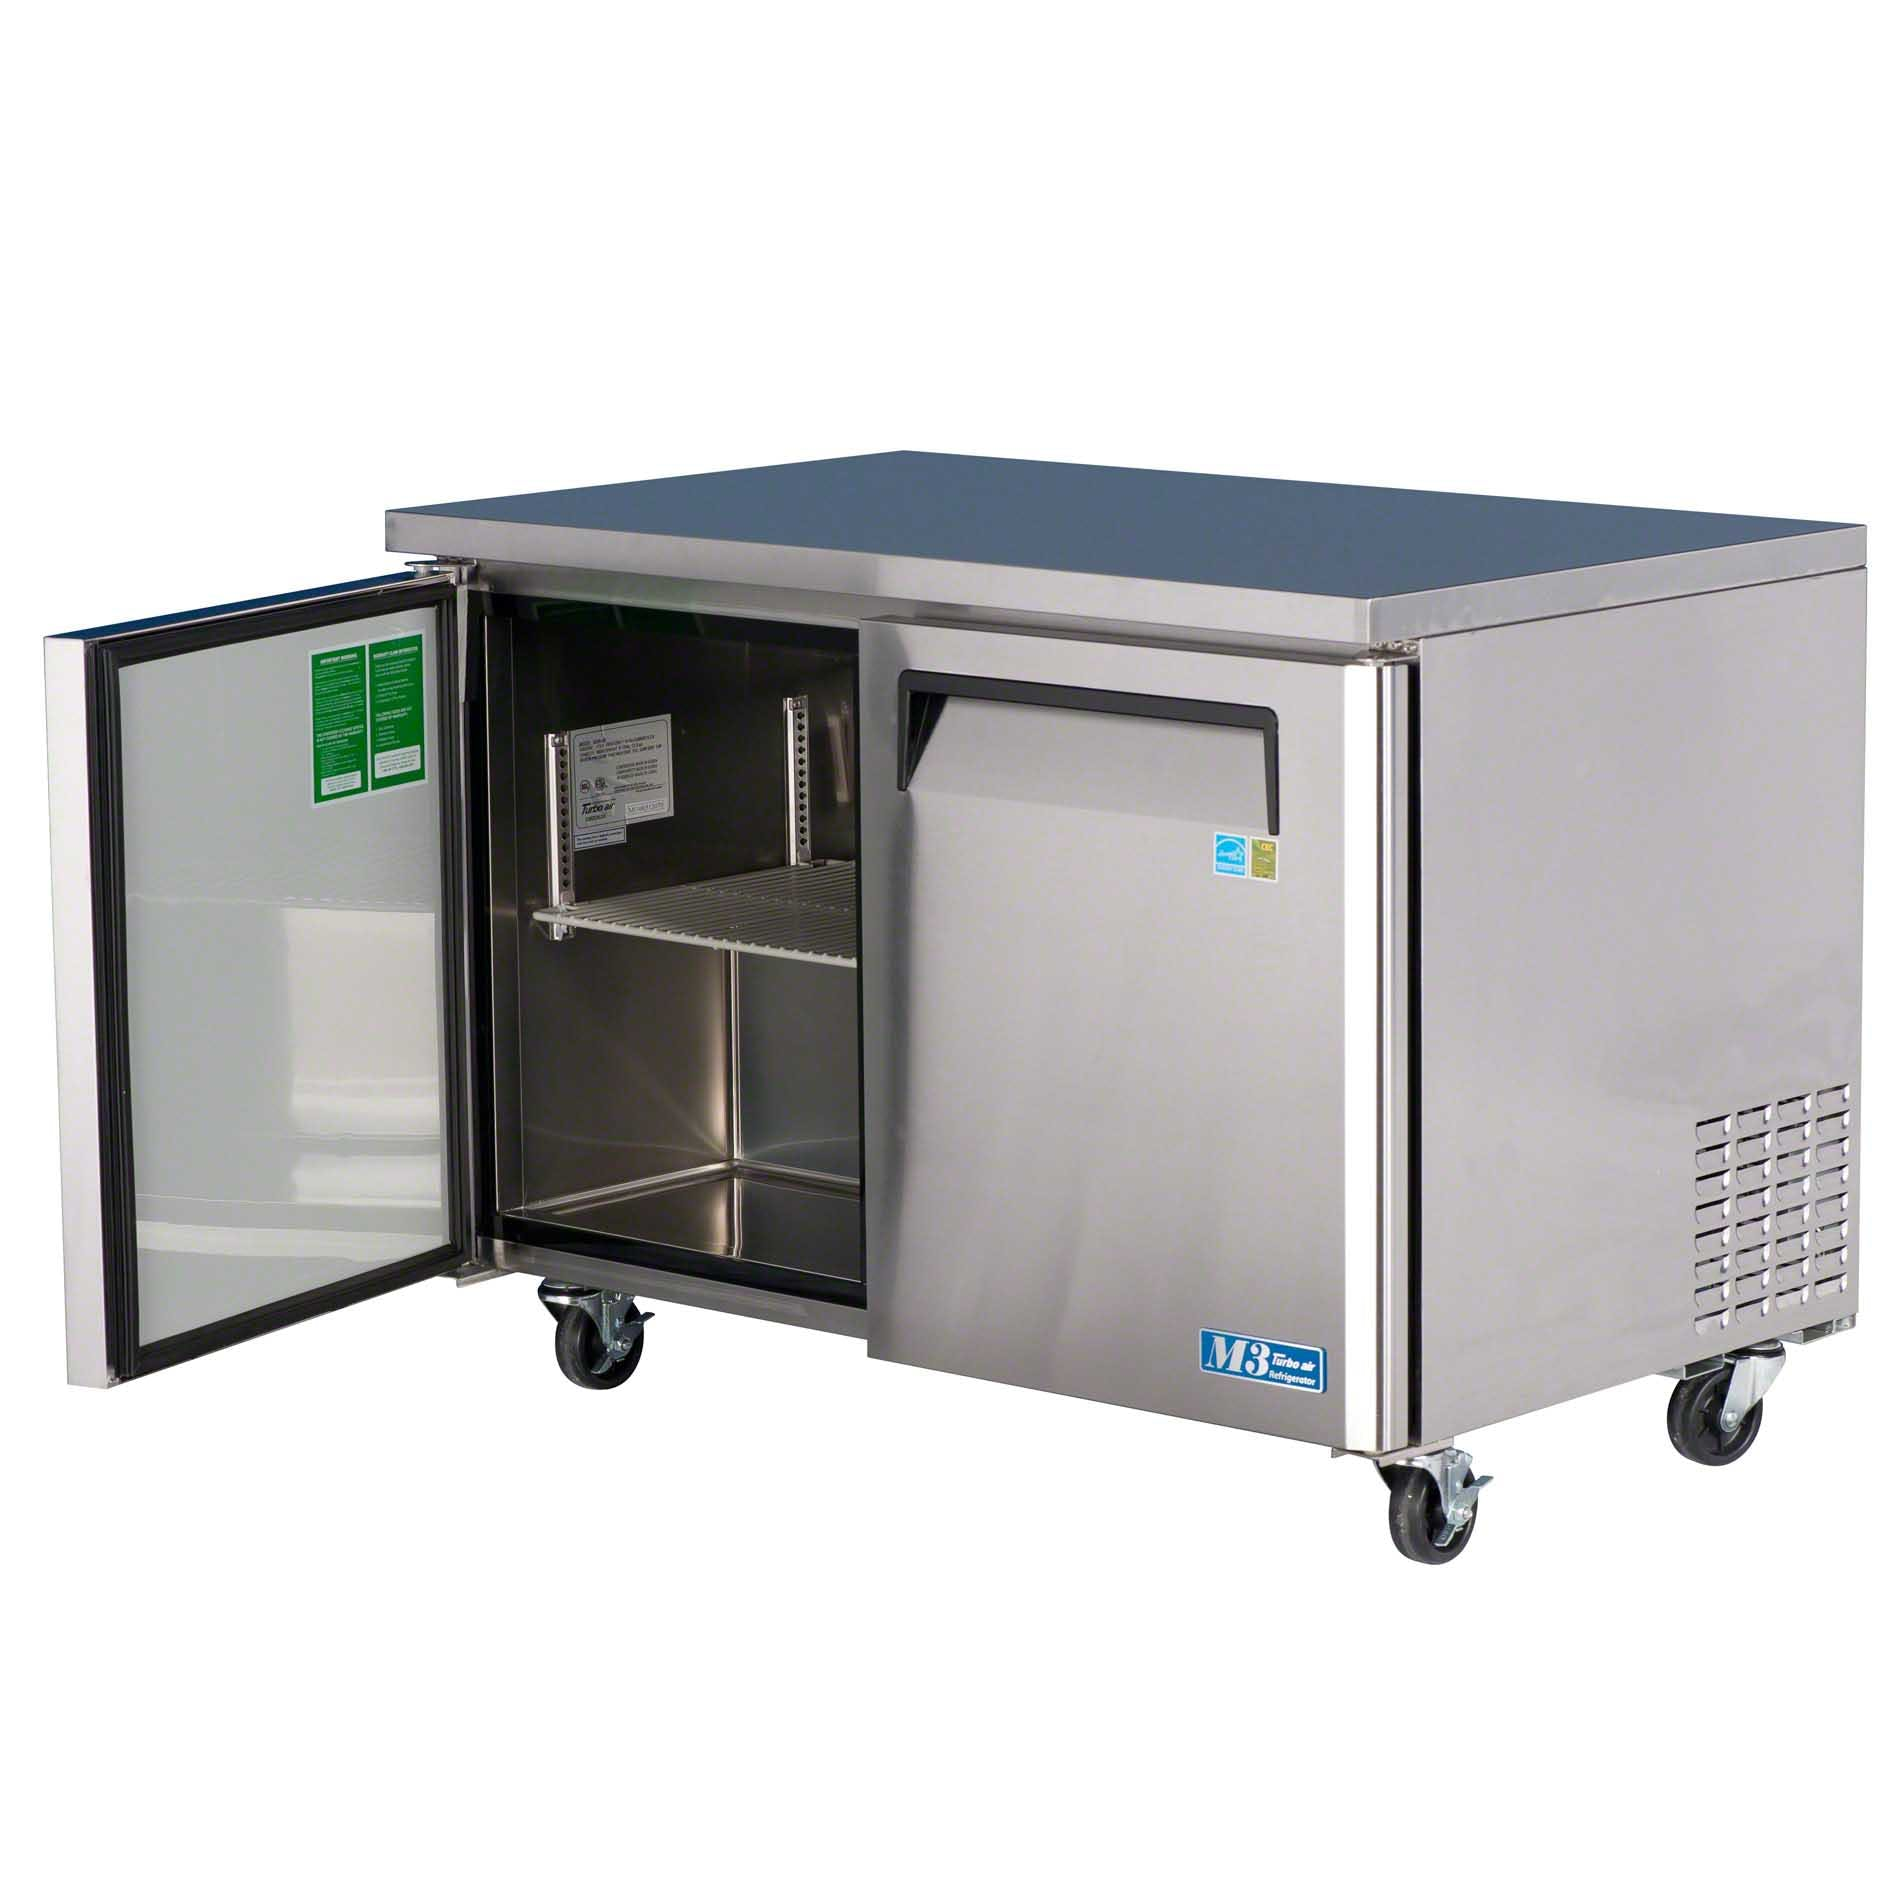 "Turbo Air - MUR-48 48"" Undercounter Refrigerator – M3 Series - sold by Food Service Warehouse"